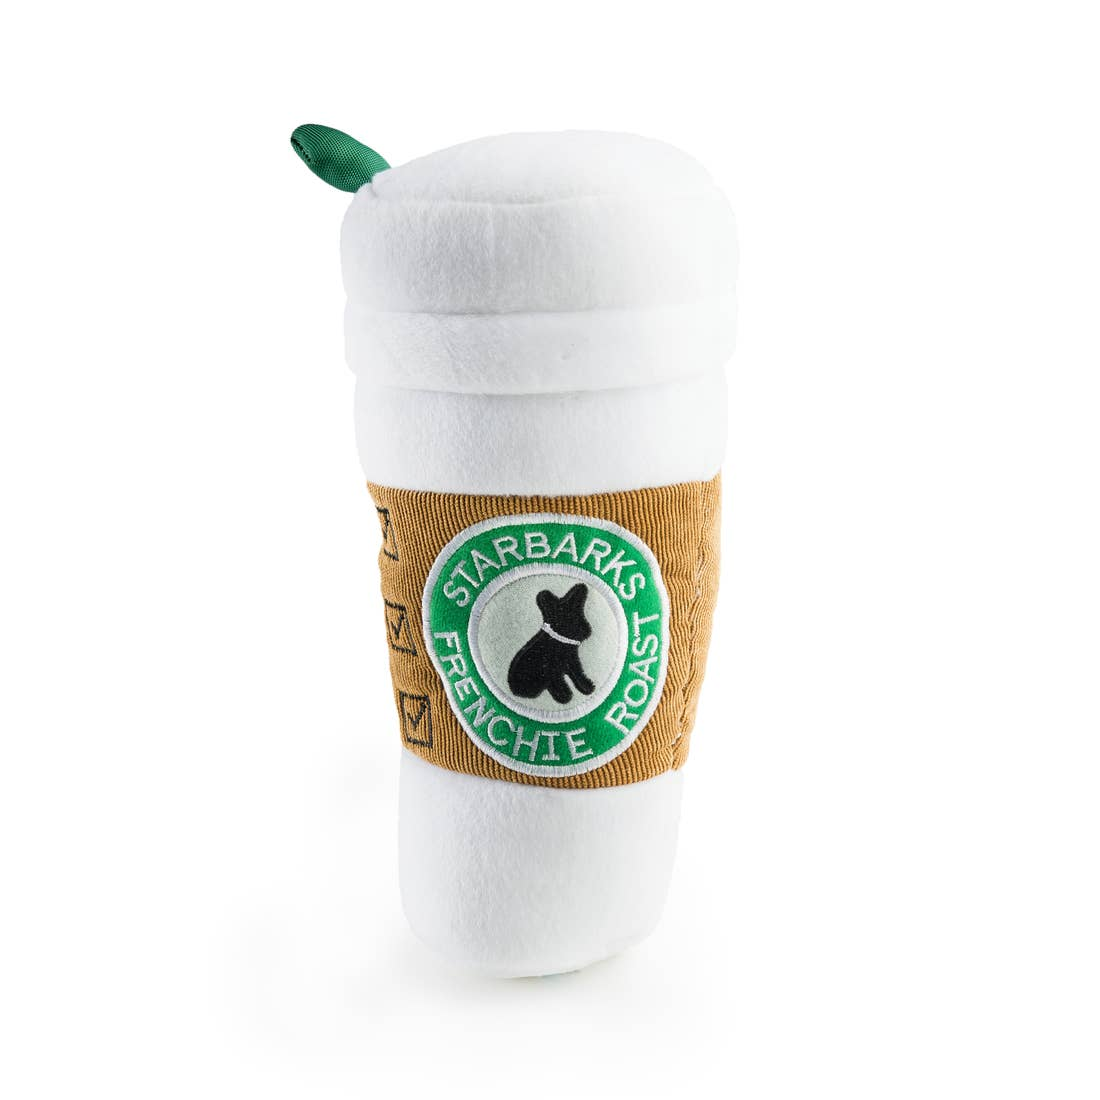 Starbarks Coffee Cup W/ Lid - Large